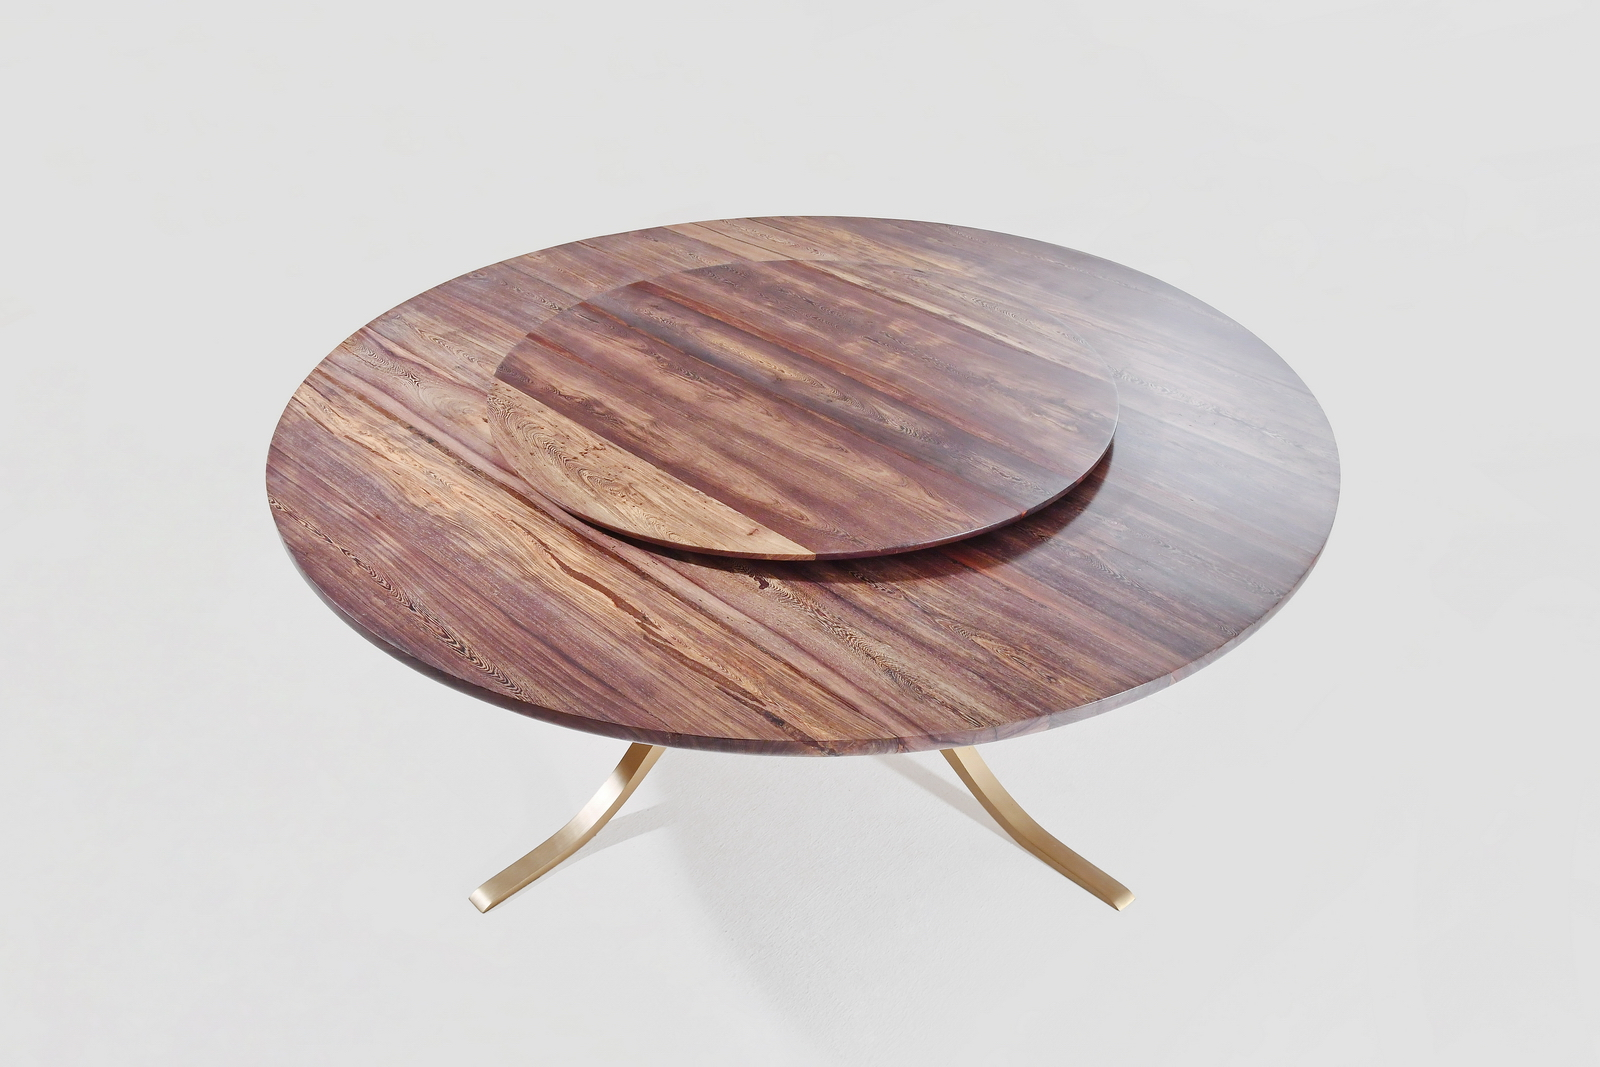 PTendercool-FTOP Round Table-PT15-BS1-BB-BL-NO-200625-05